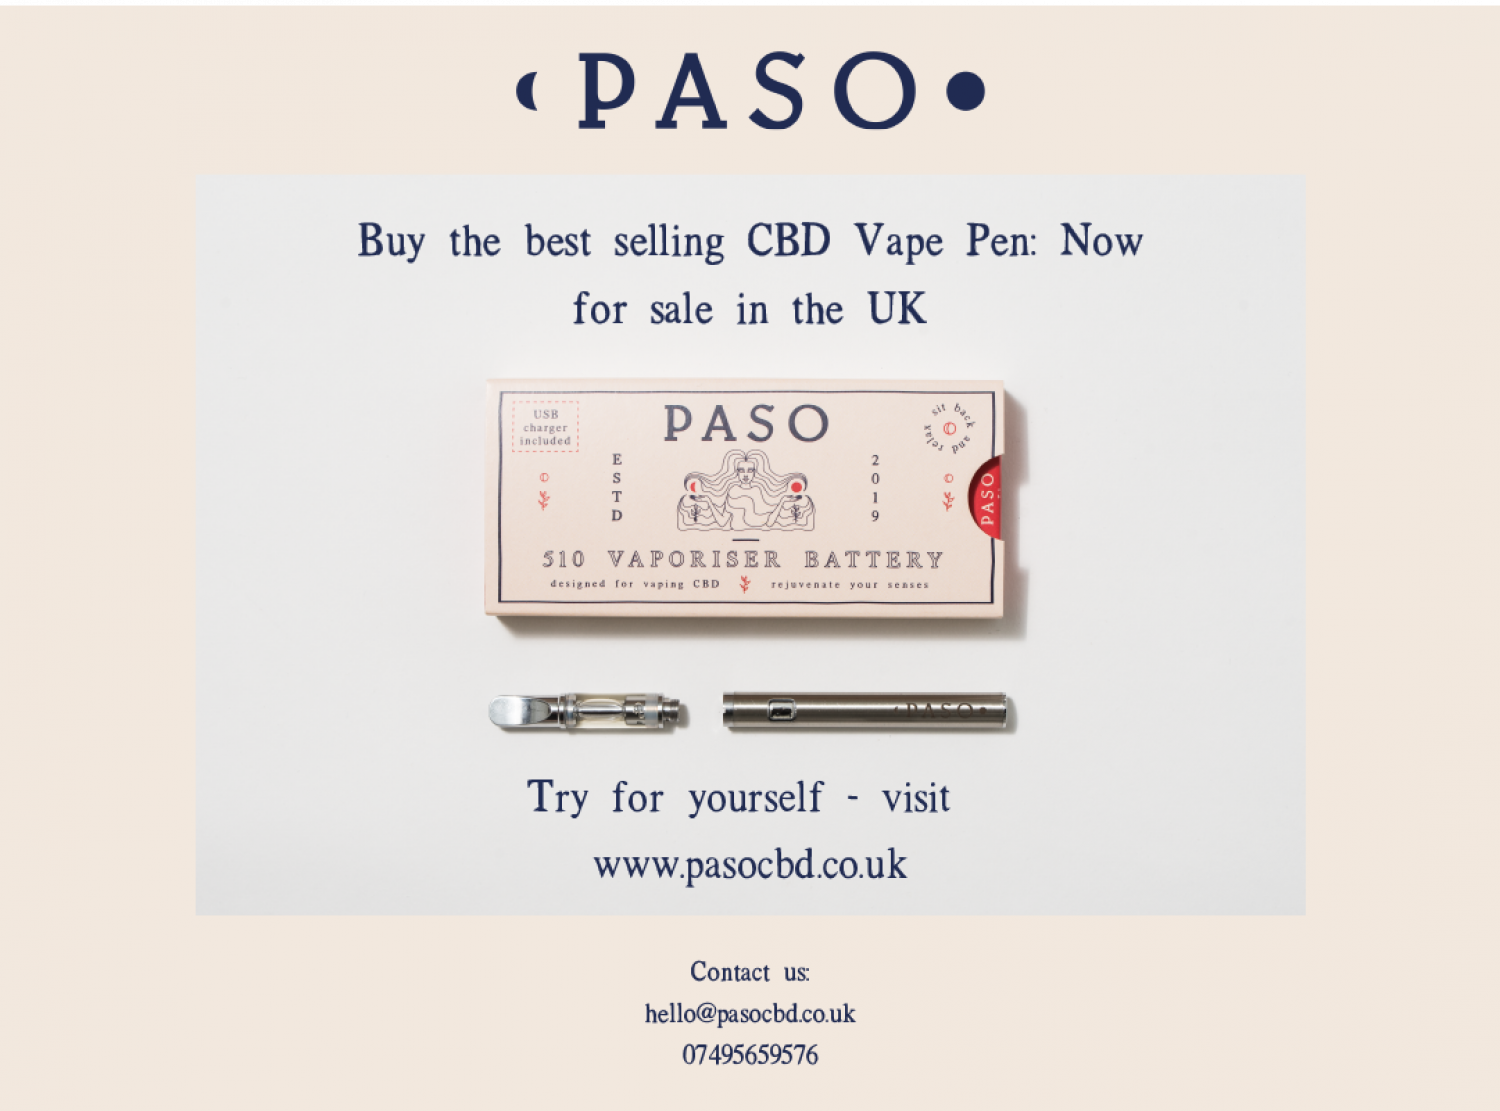 Buy the best selling Paso CBD Vape Pen: Now for sale in the UK Infographic